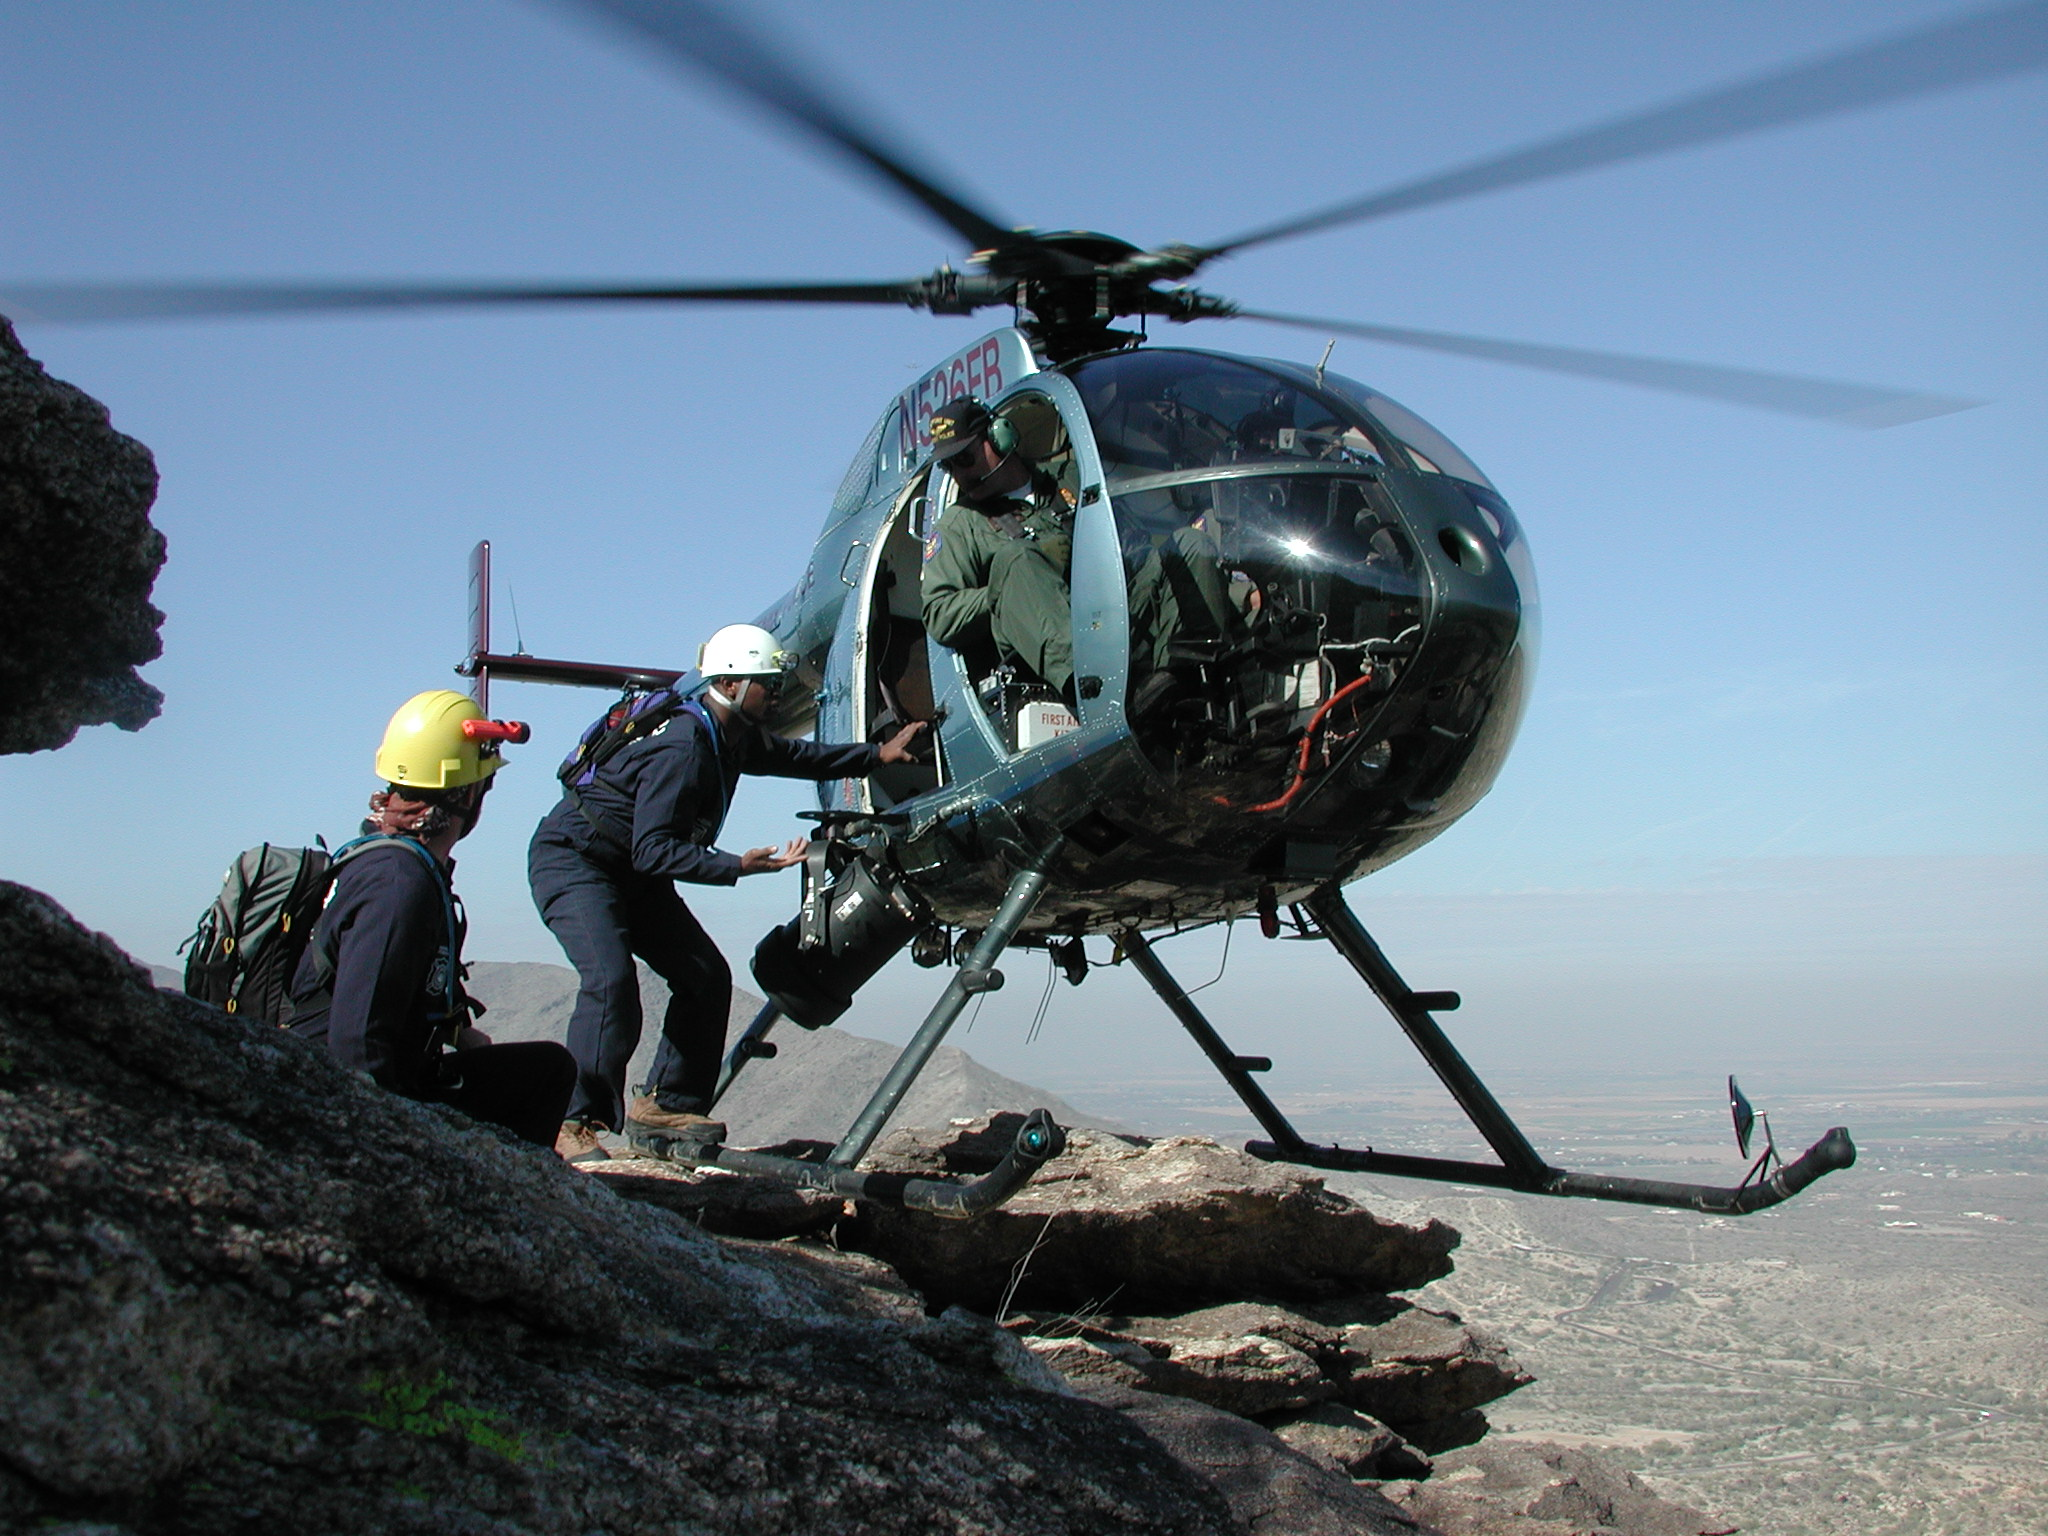 make helicopters with Helicopter Rescue on Watch additionally 22724 furthermore Boeing 717 Specs And Description additionally 01284 as well Watch.